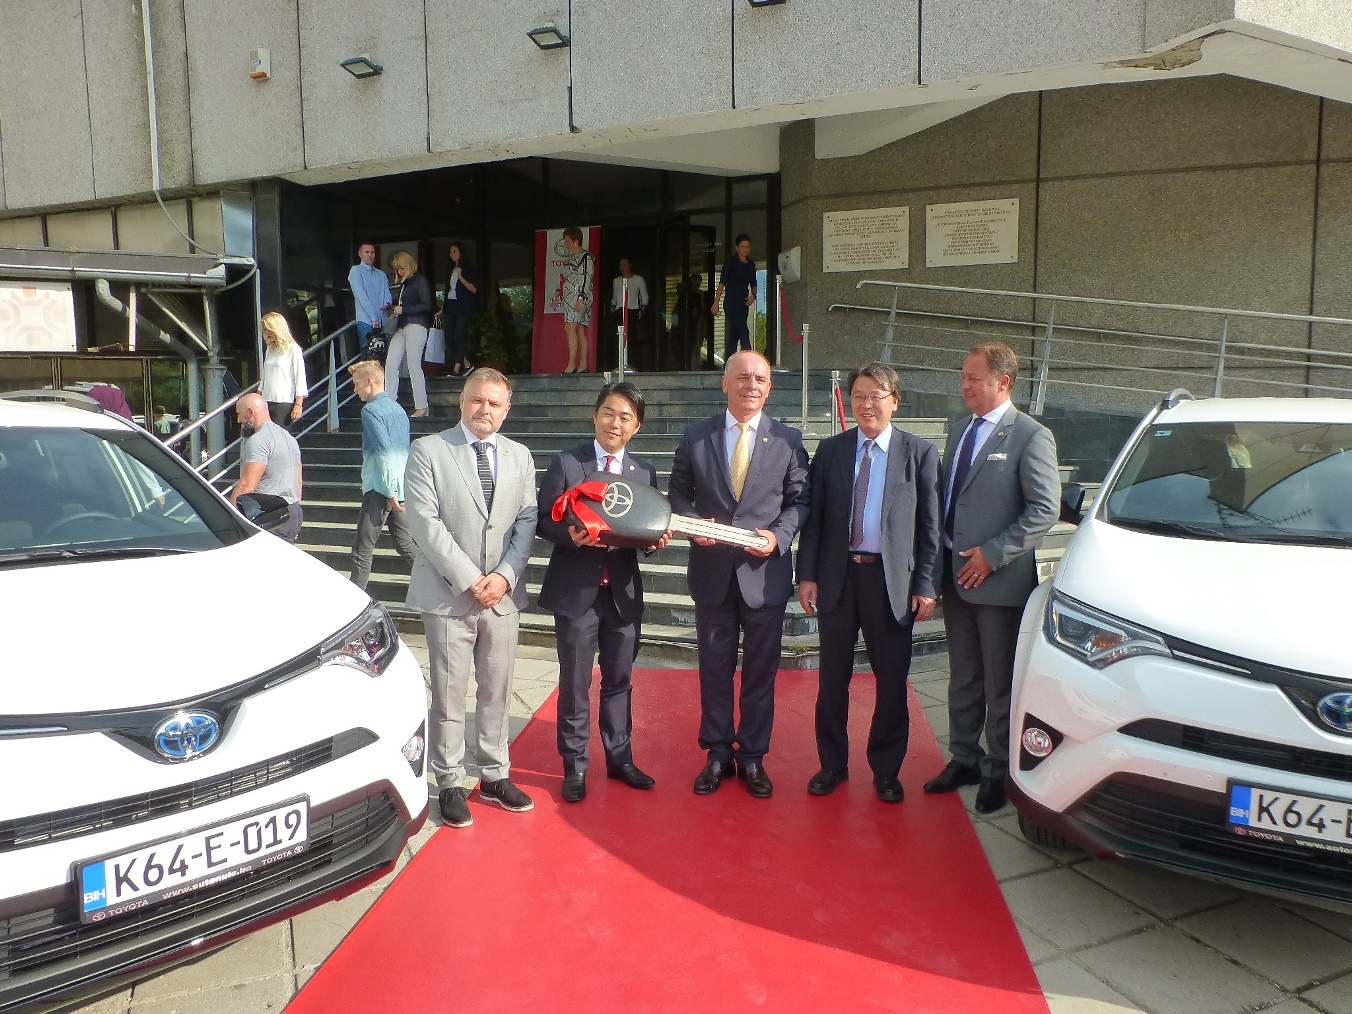 ... at the Olympic Committee, a sponsorship agreement was officially signed between Toyota BiH (Bosnia and Herzegovina representative office of Toyota Adria ...